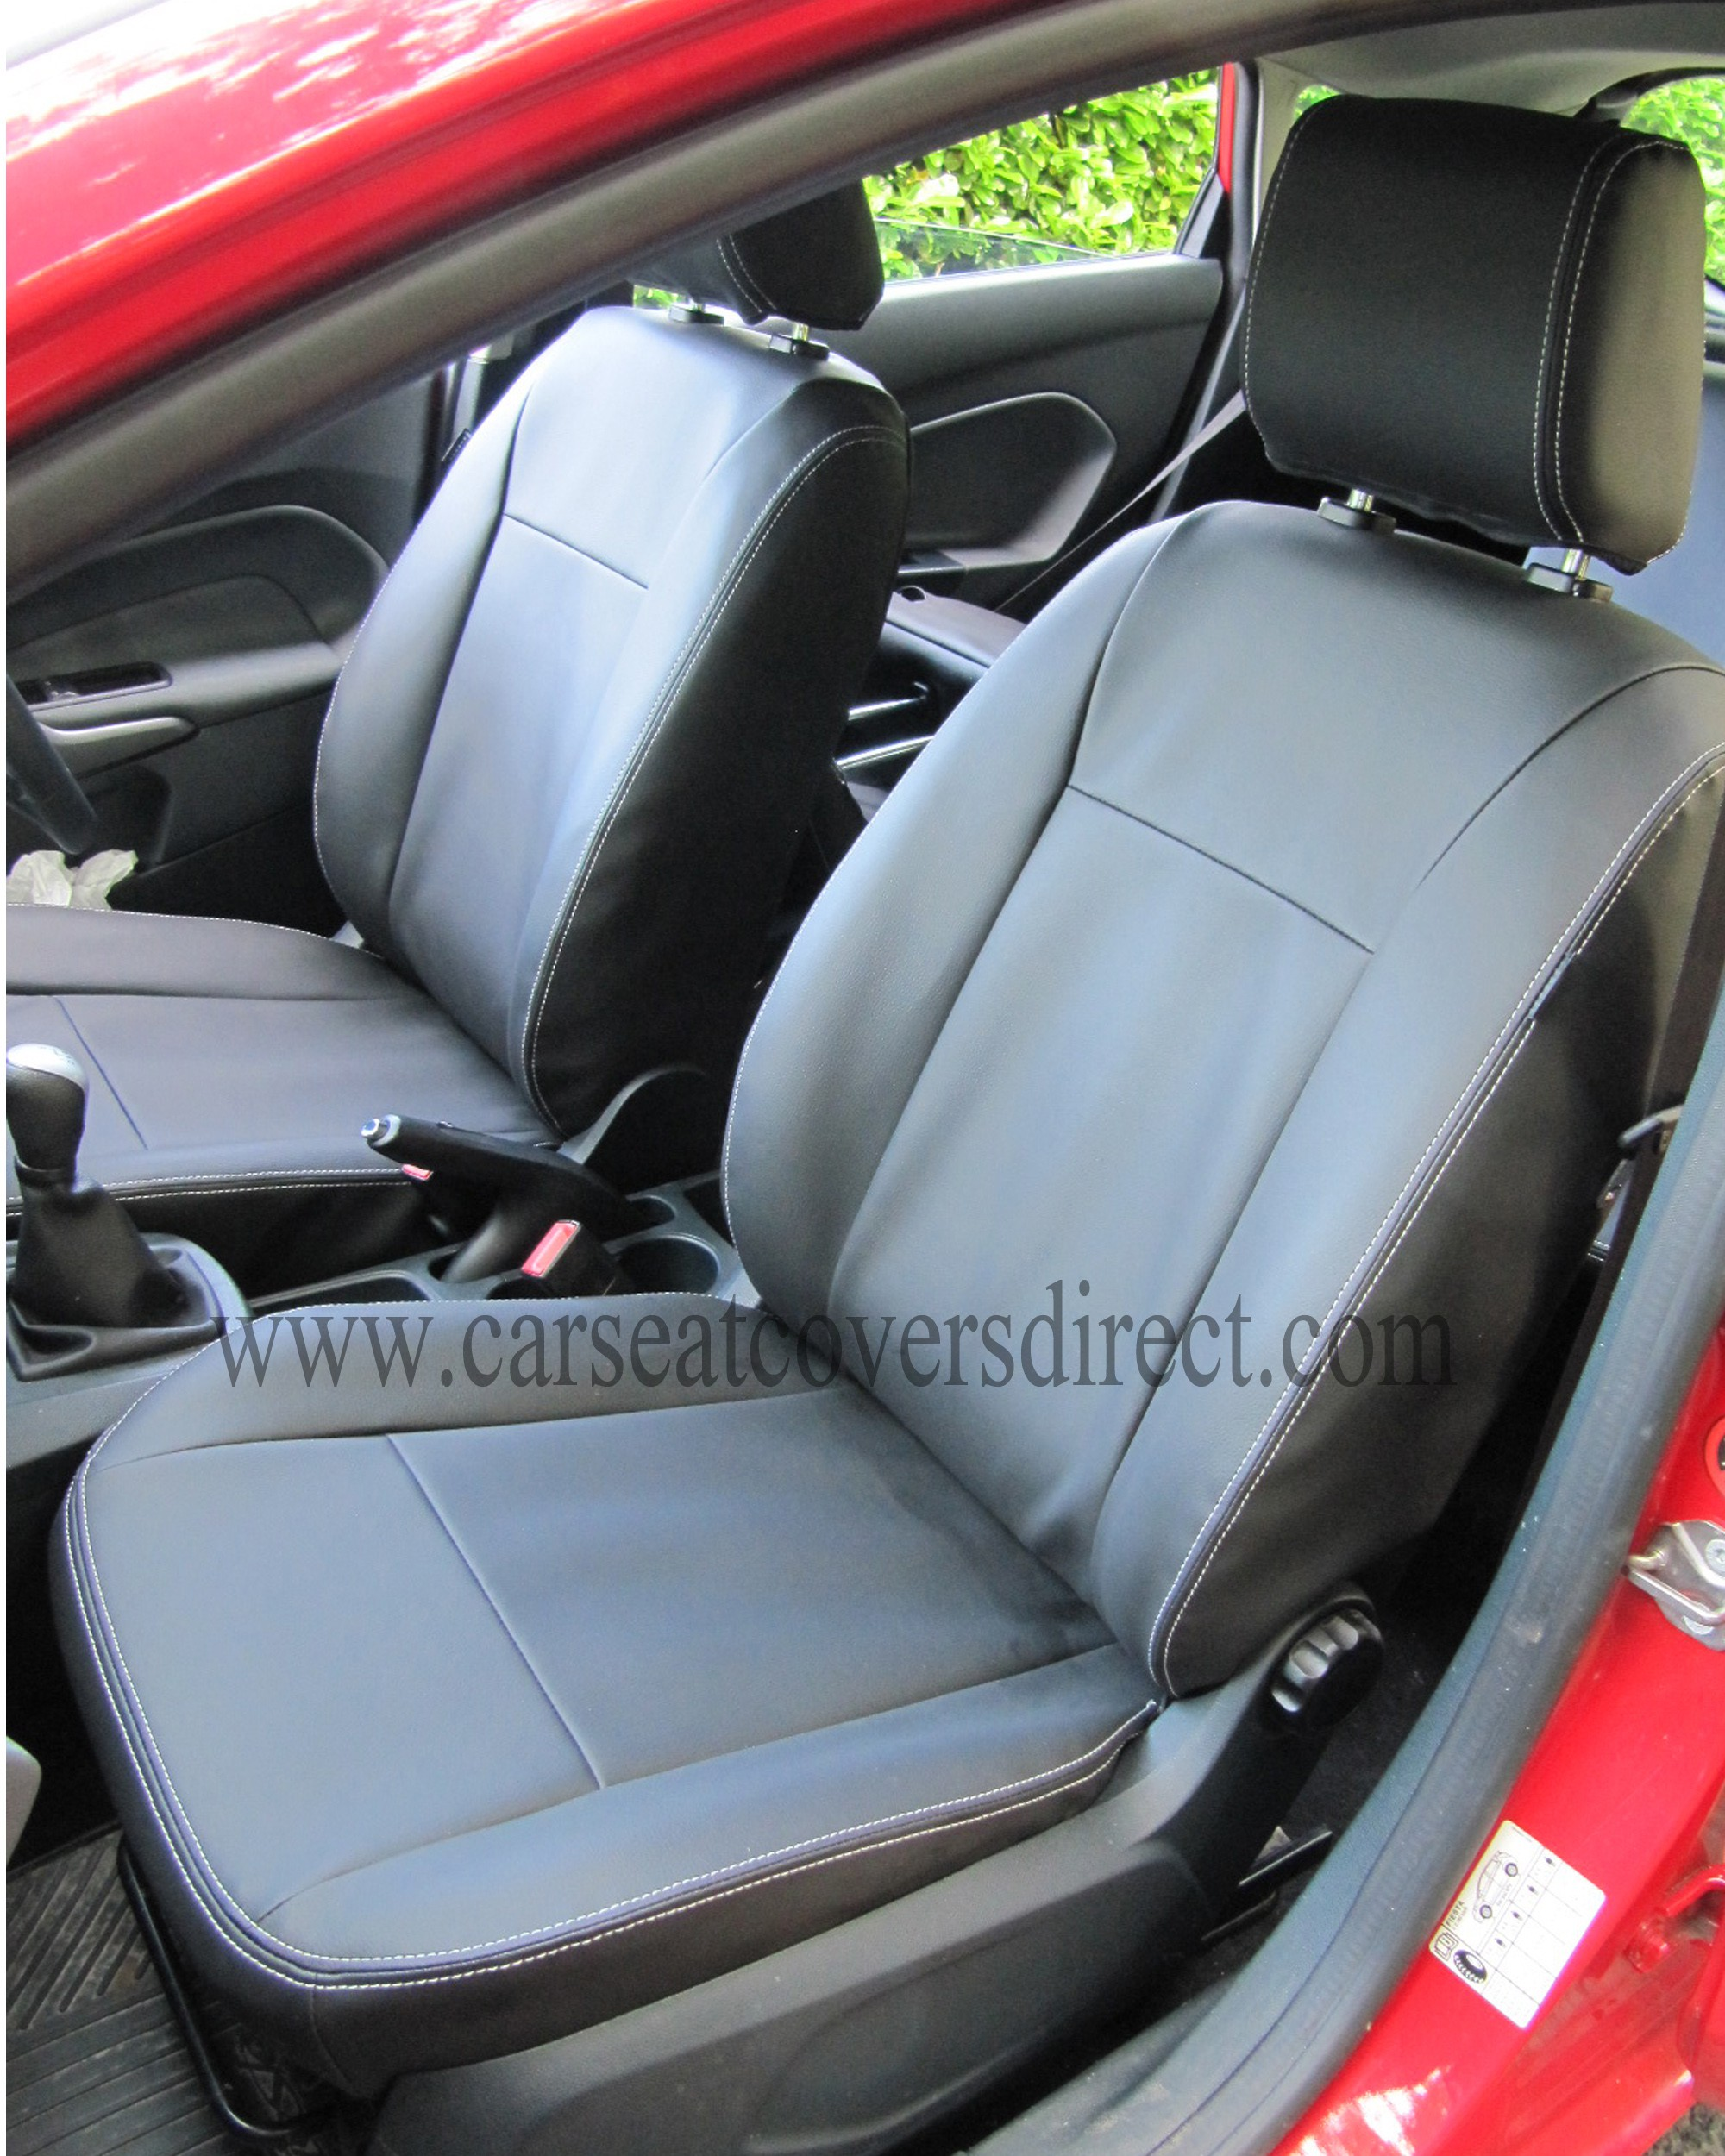 Ford Fiesta passenger seat with seat cover